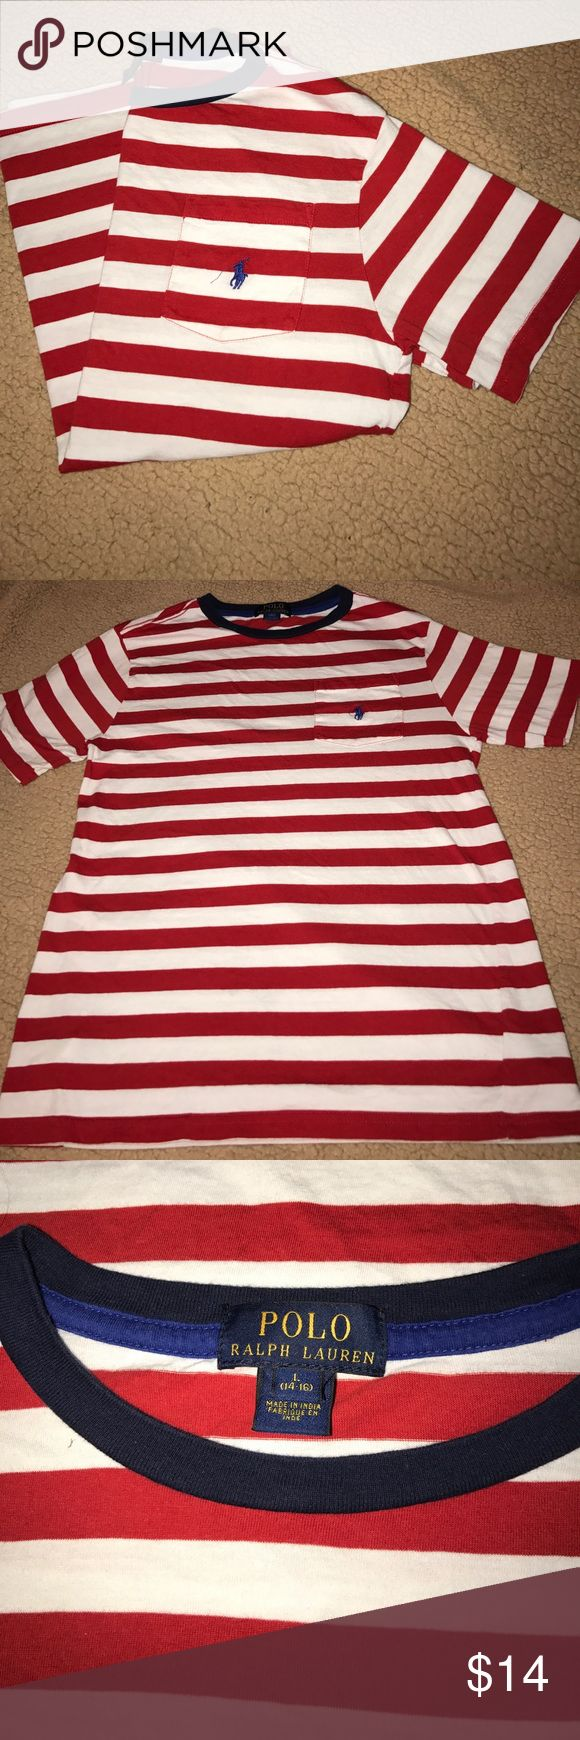 Polo Ralph Lauren t shirt Red and white striped polo pocket t shirt navy lining &a horse size YL fits women's small Polo by Ralph Lauren Tops Tees - Short Sleeve